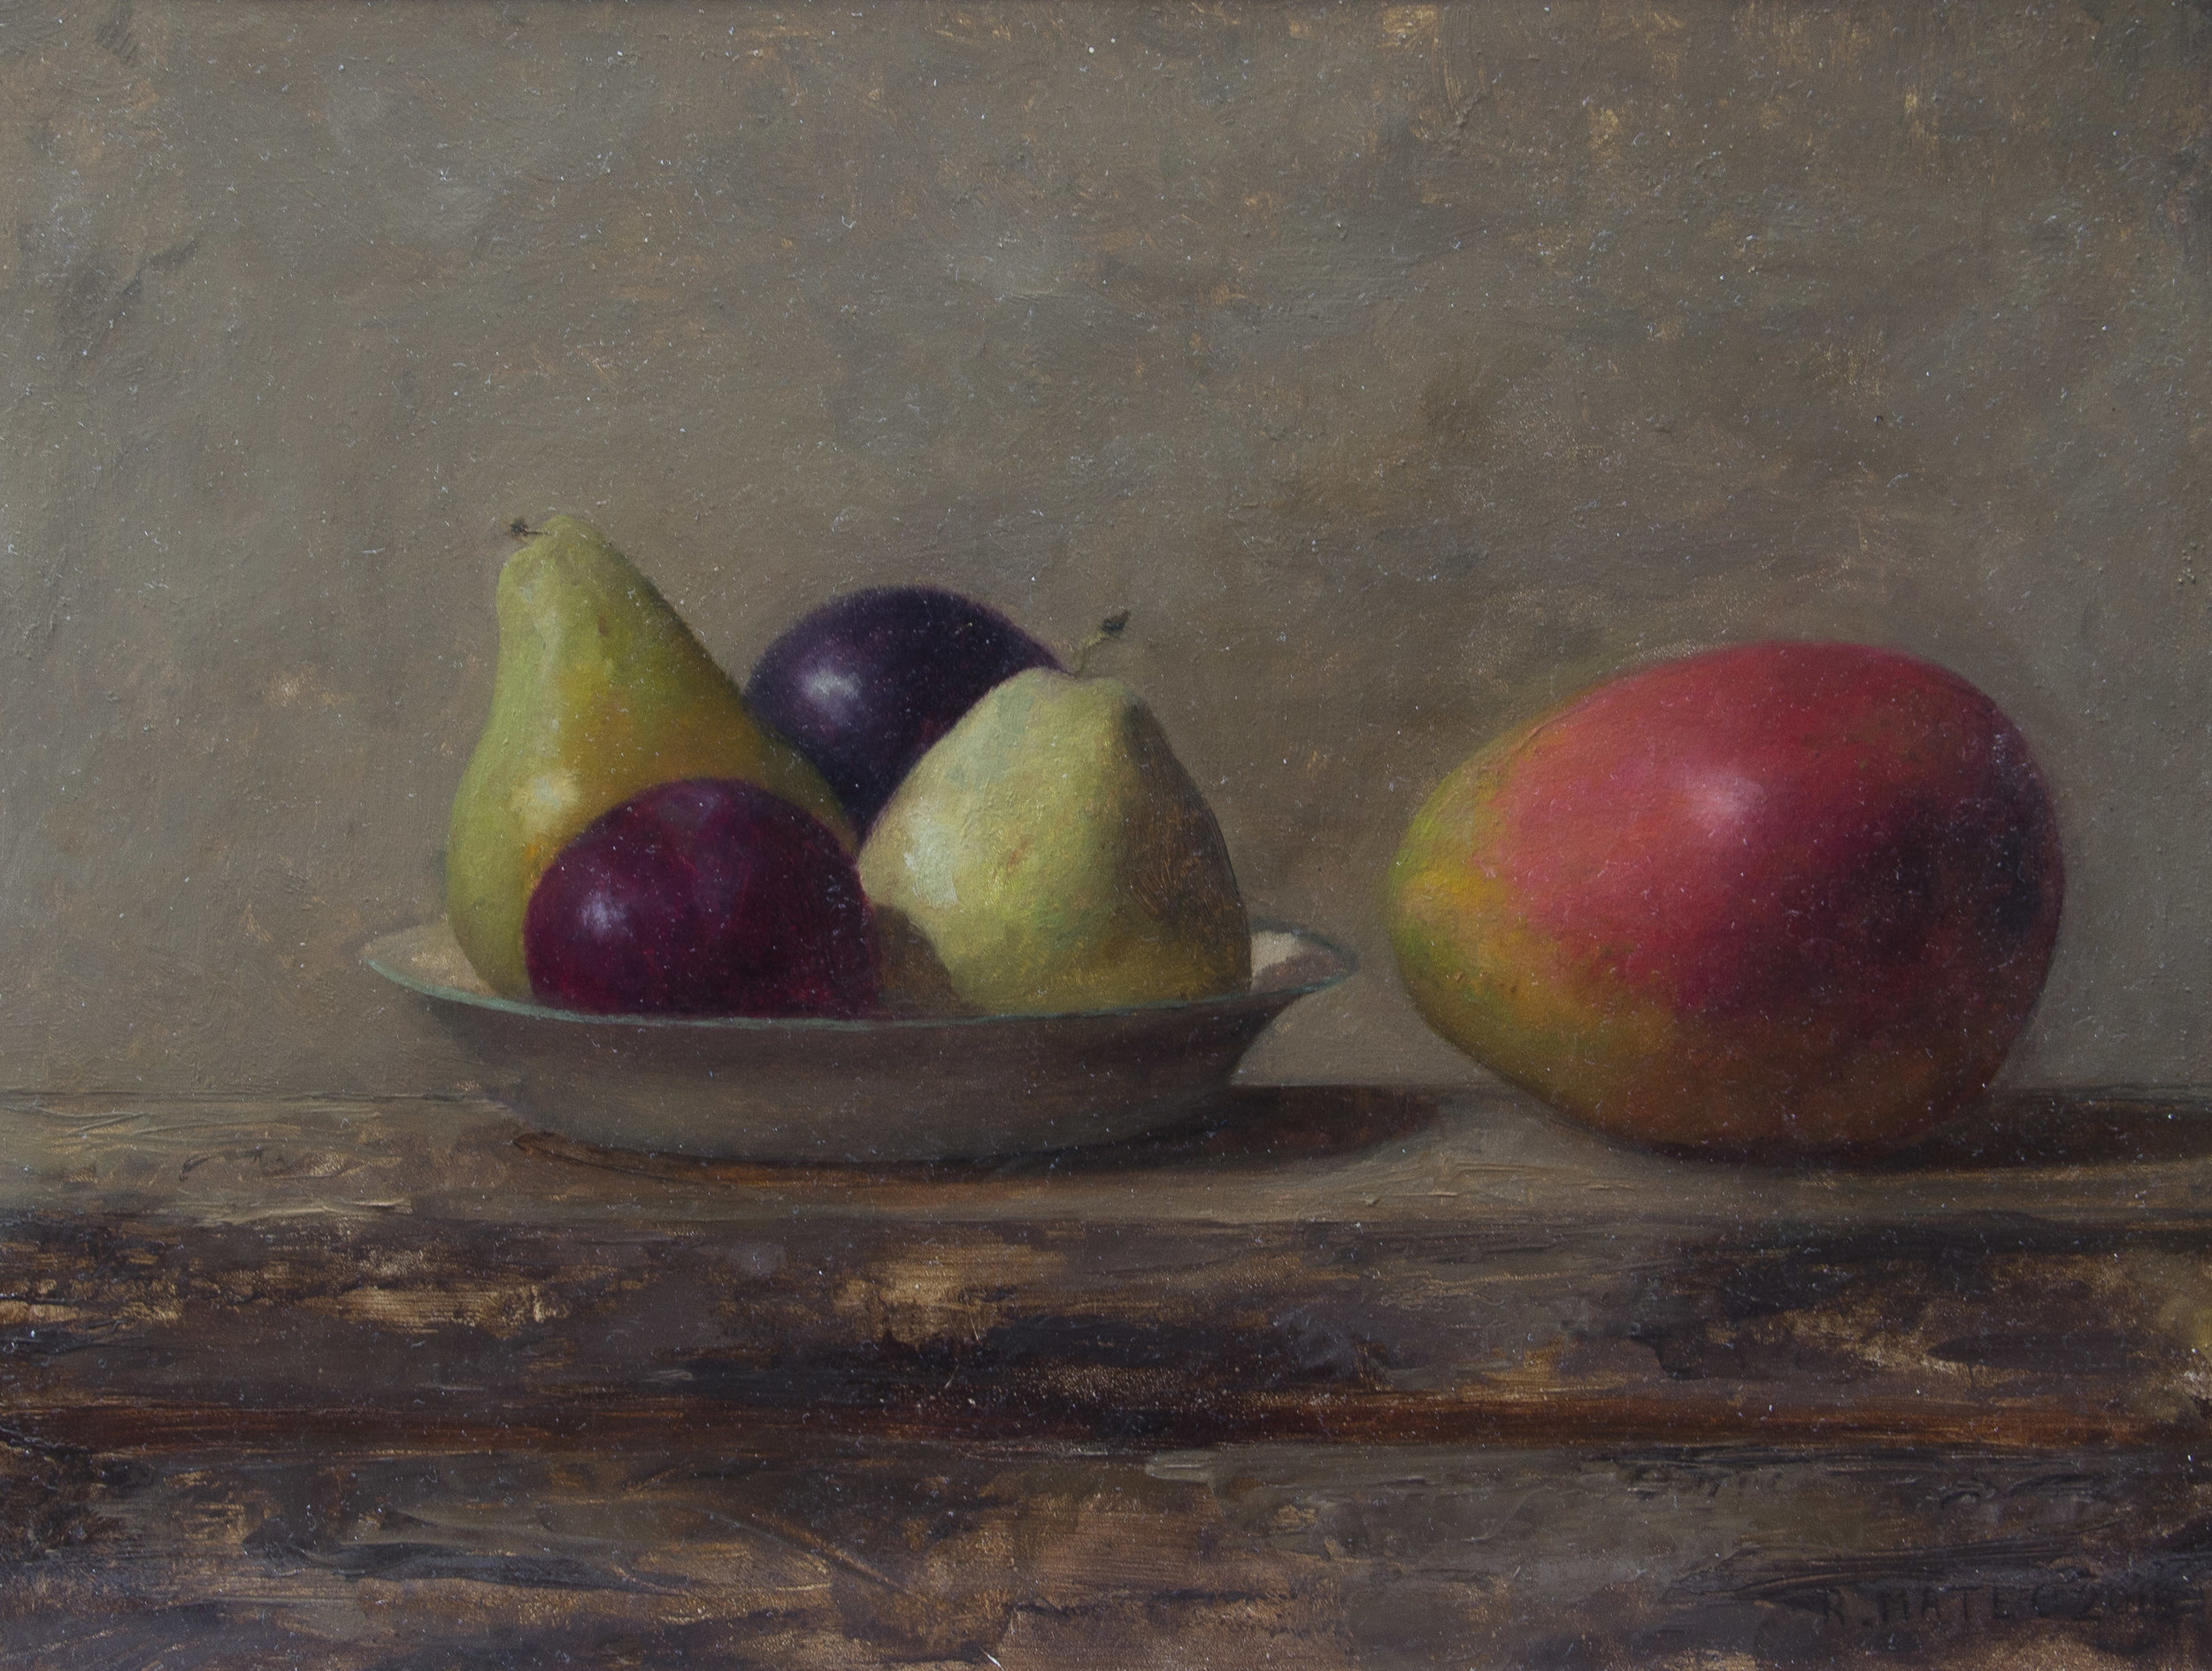 Fruit Plate with Mangoes  by Rodrigo Mateo. 2017, oil on panel. 9 x 12 in, $1,400